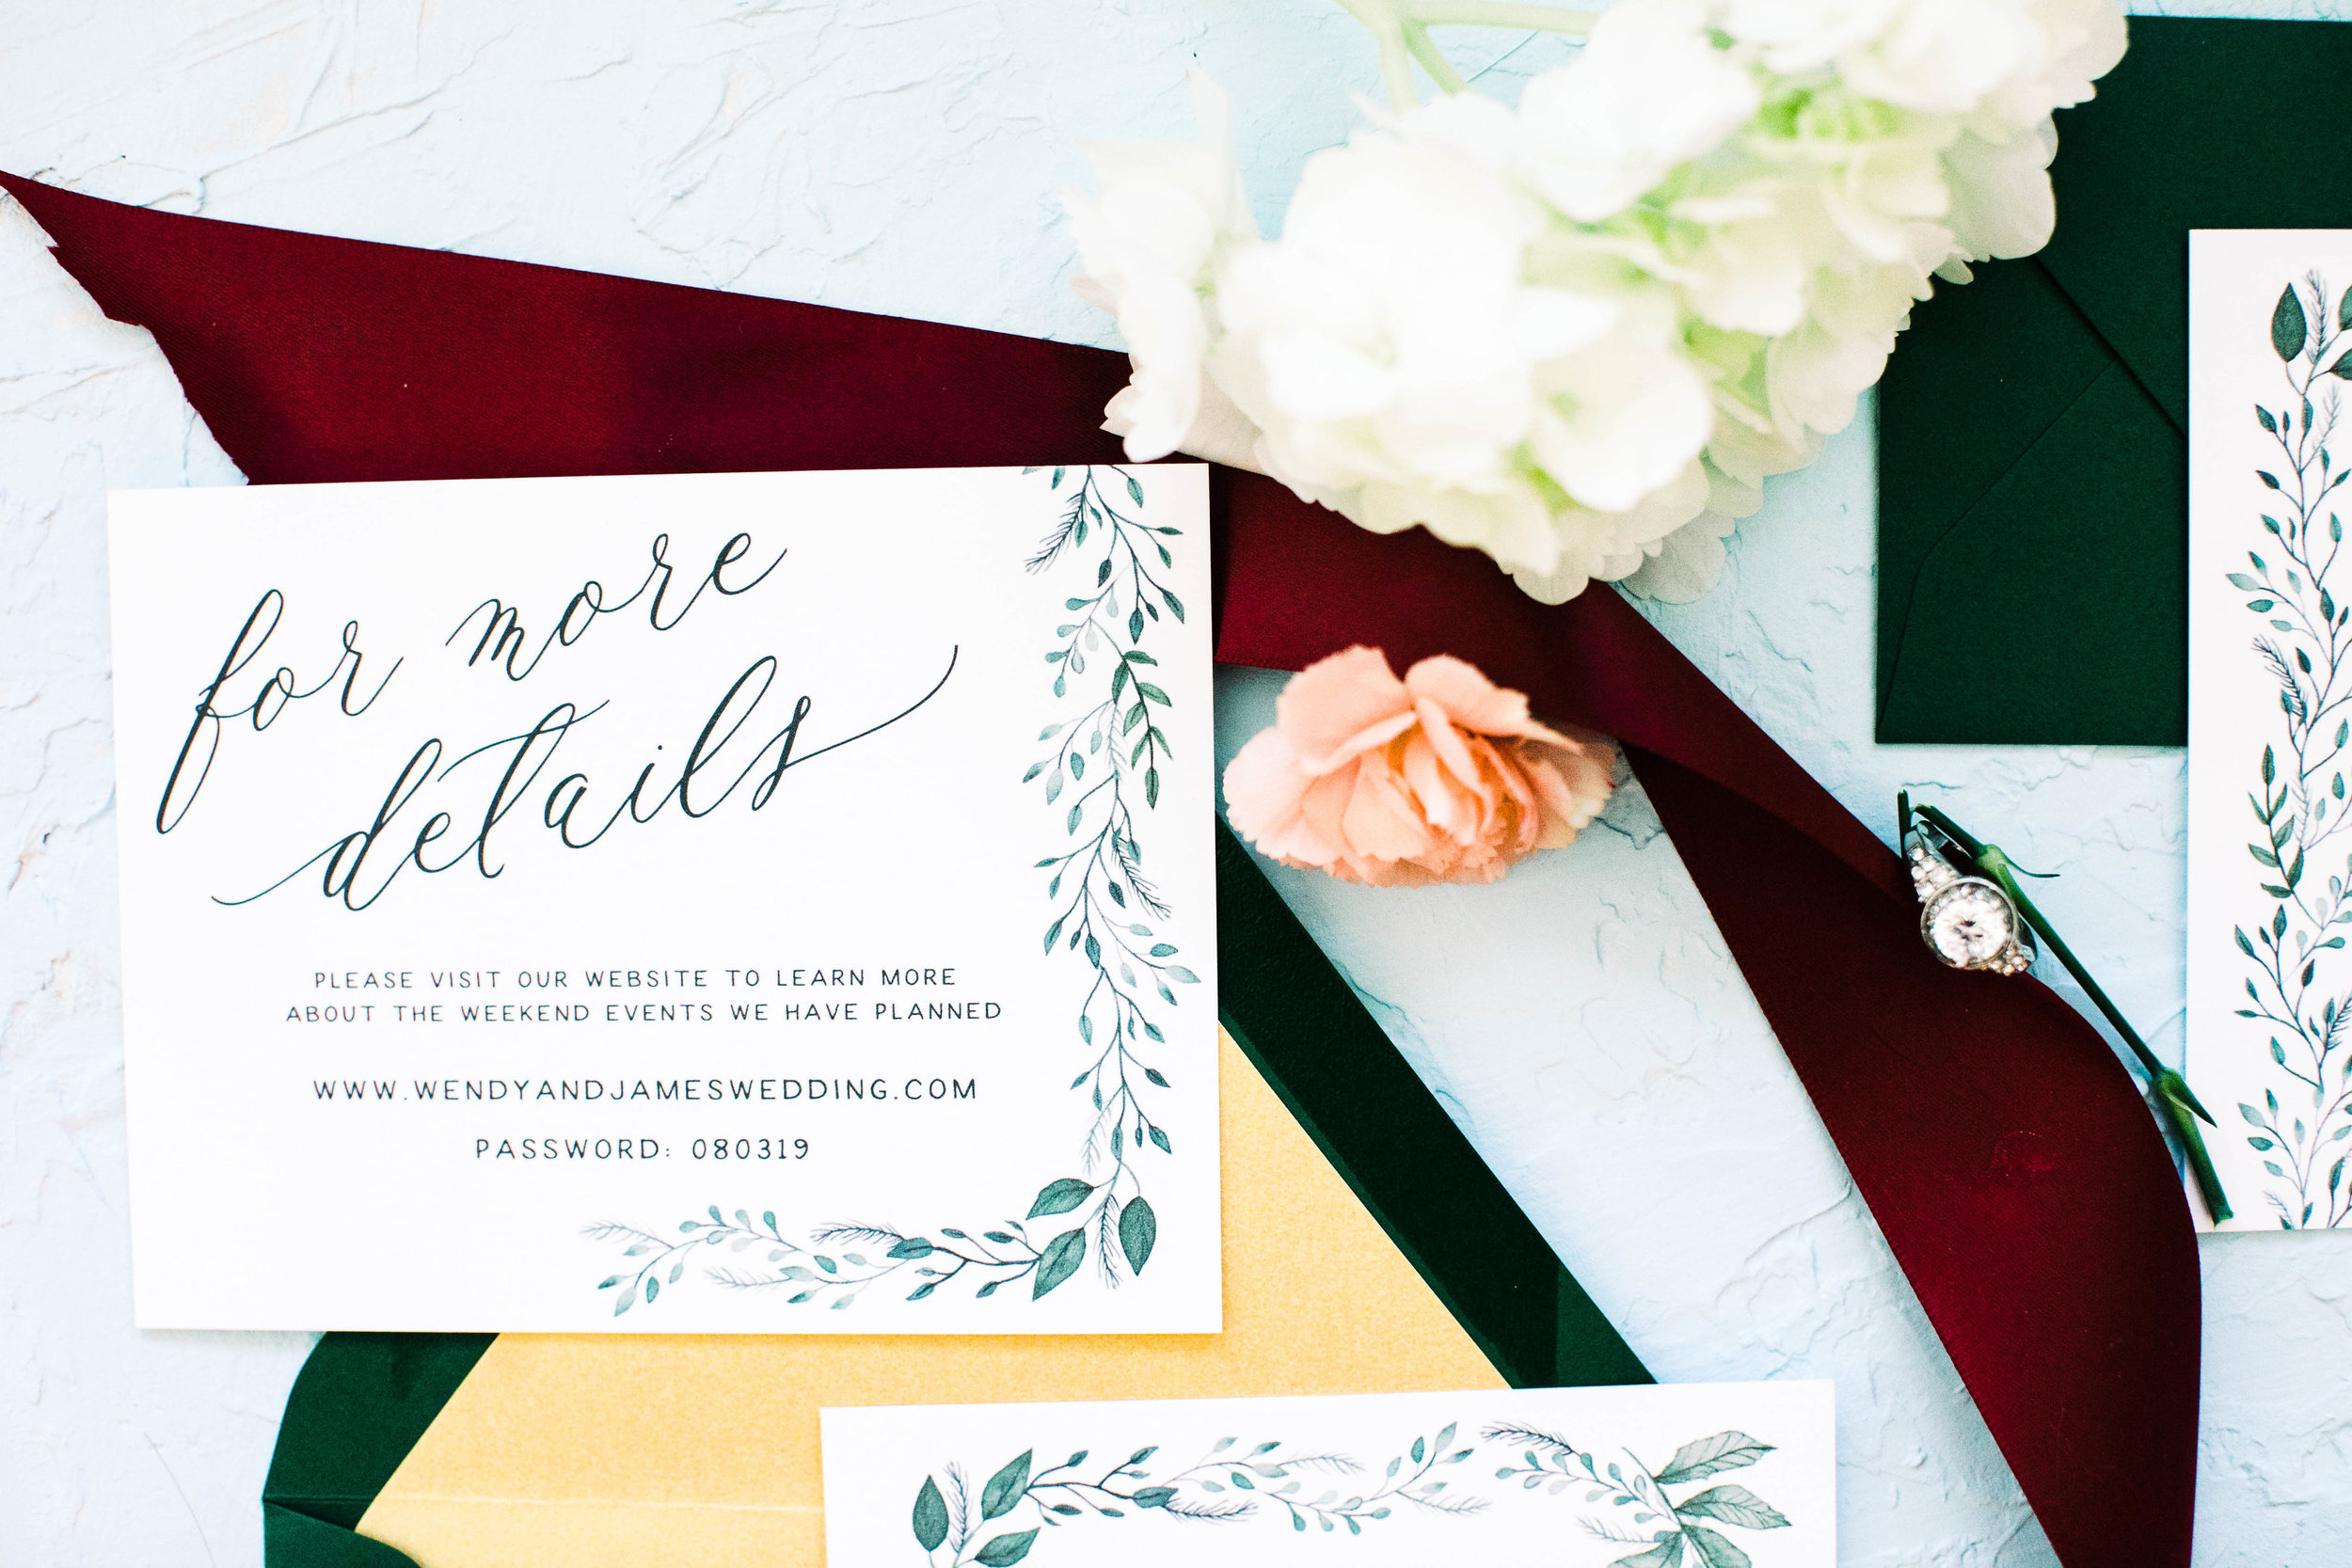 Hand Painted Watercolor Greenery Wedding Invitations -Wendy 3W2A0295.jpg